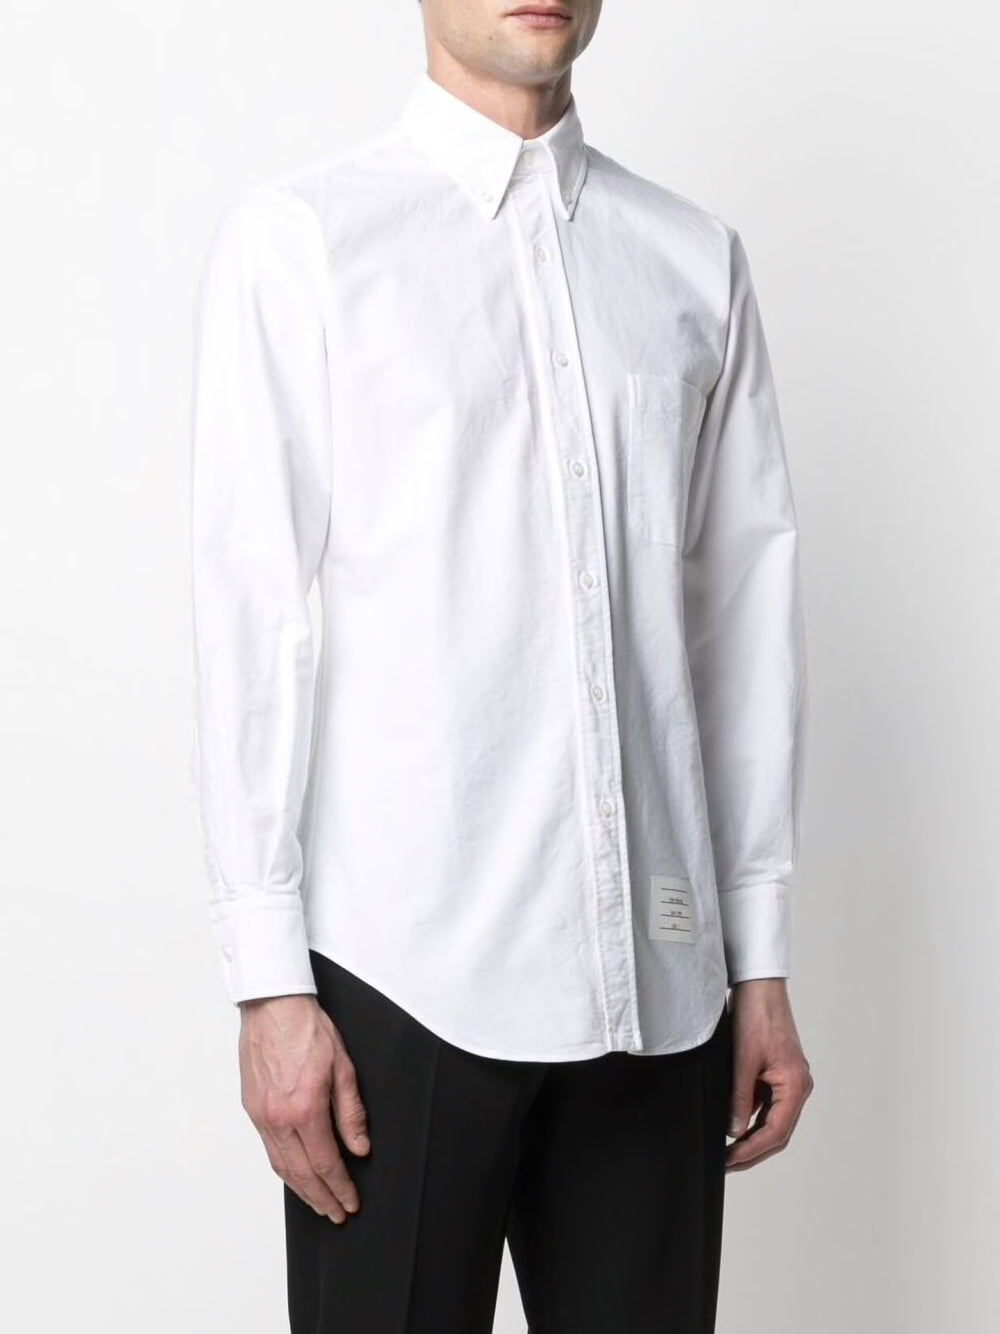 THOM BROWNE MEN CLASSIC LONG-SLEEVE BUTTON DOWN SHIRT W/ RWB PLACKET IN OXFORD